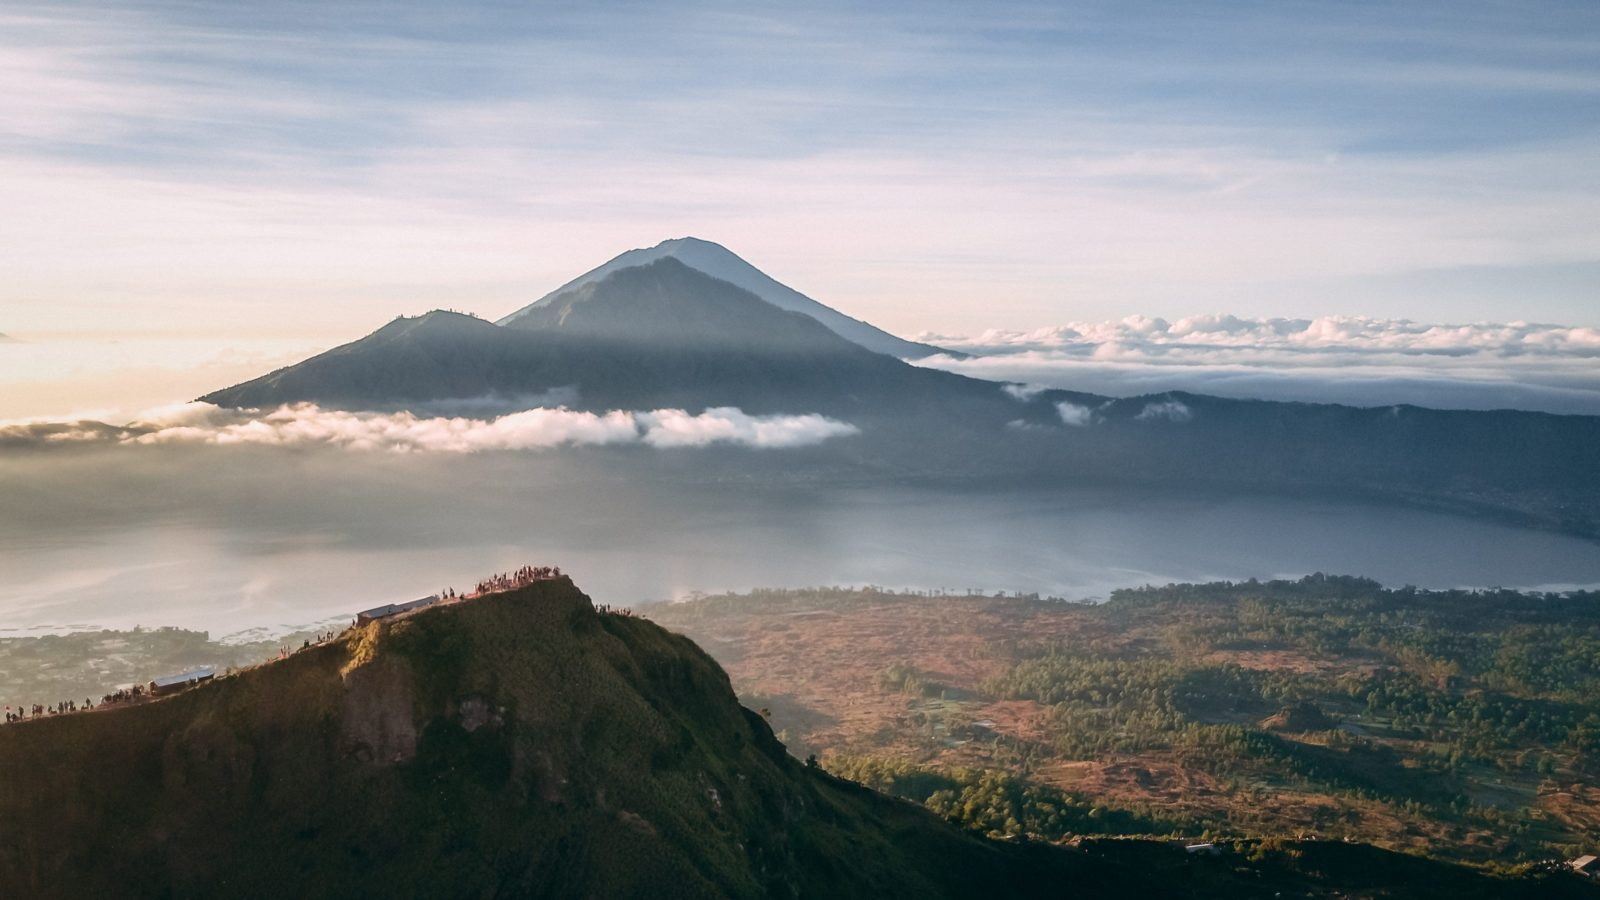 Bali is set to welcome tourists in October